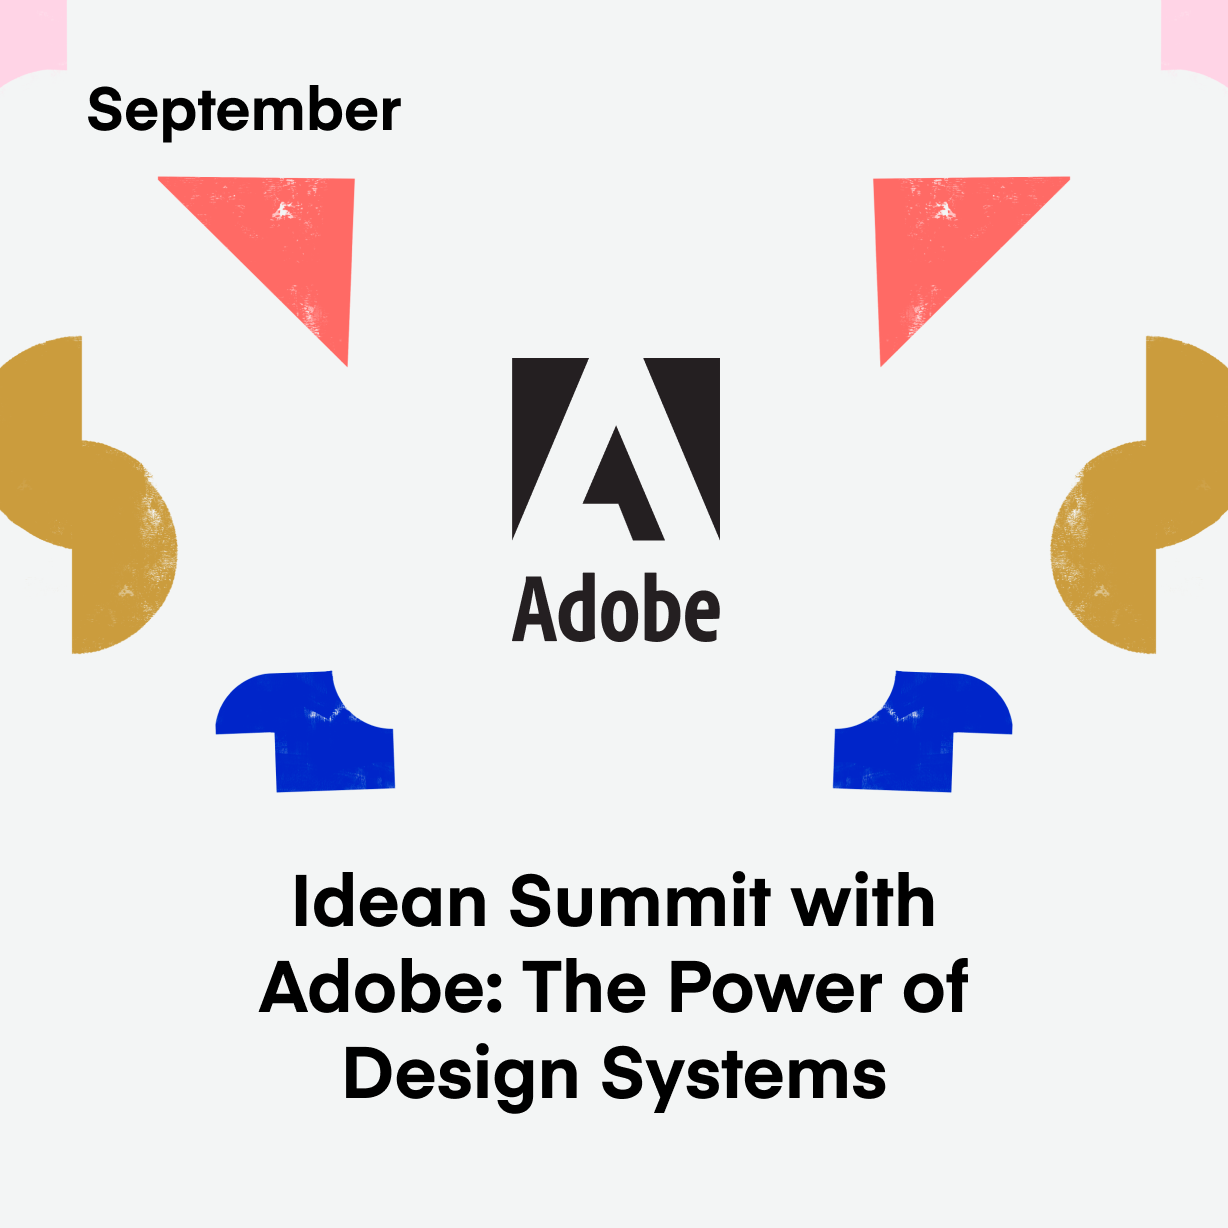 Idean Summit with Adobe: The Power of Design Systems